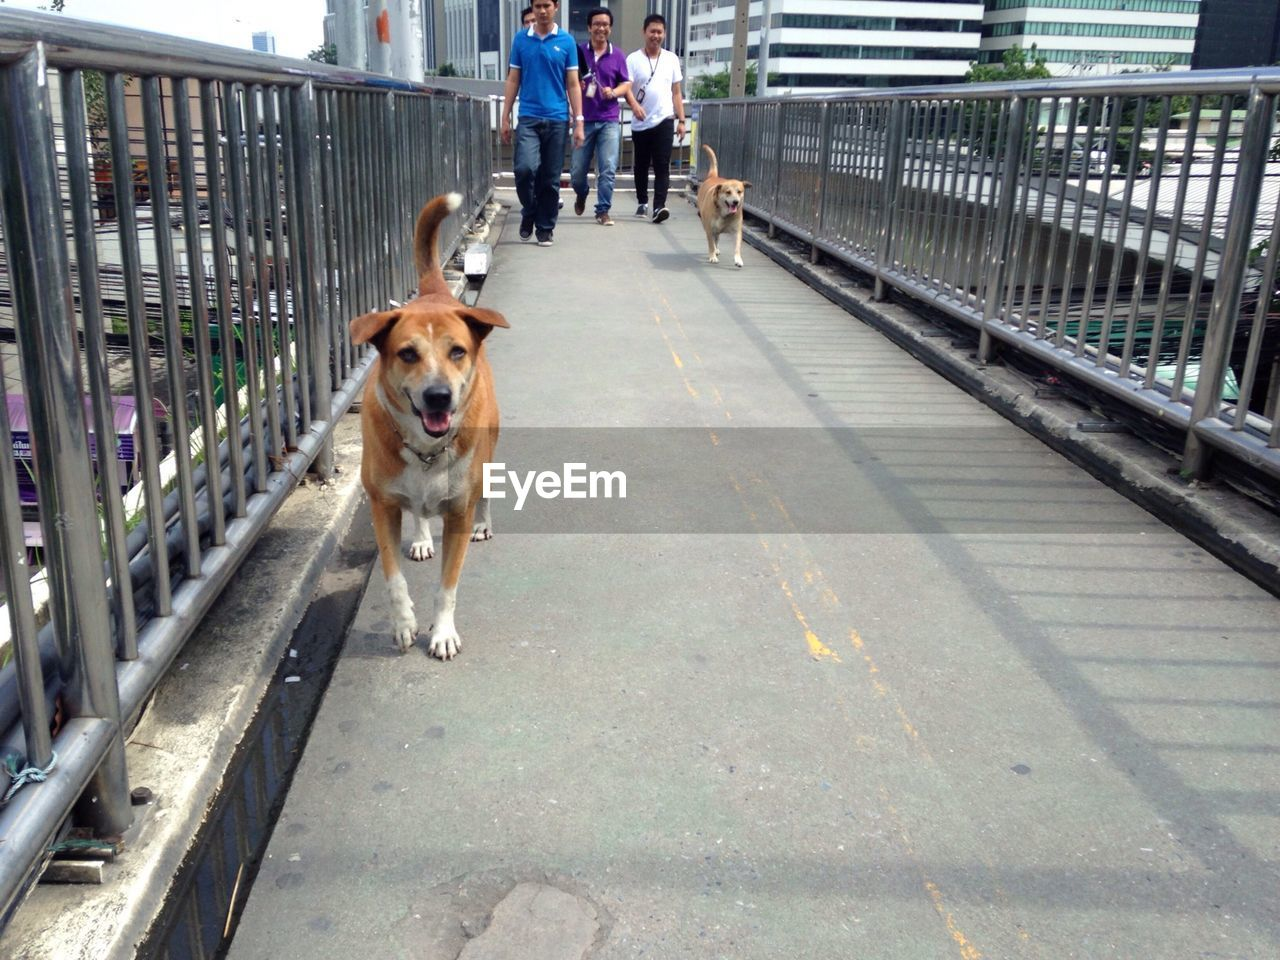 dog, railing, walking, animal themes, pets, one animal, day, domestic animals, full length, real people, outdoors, one person, mammal, people